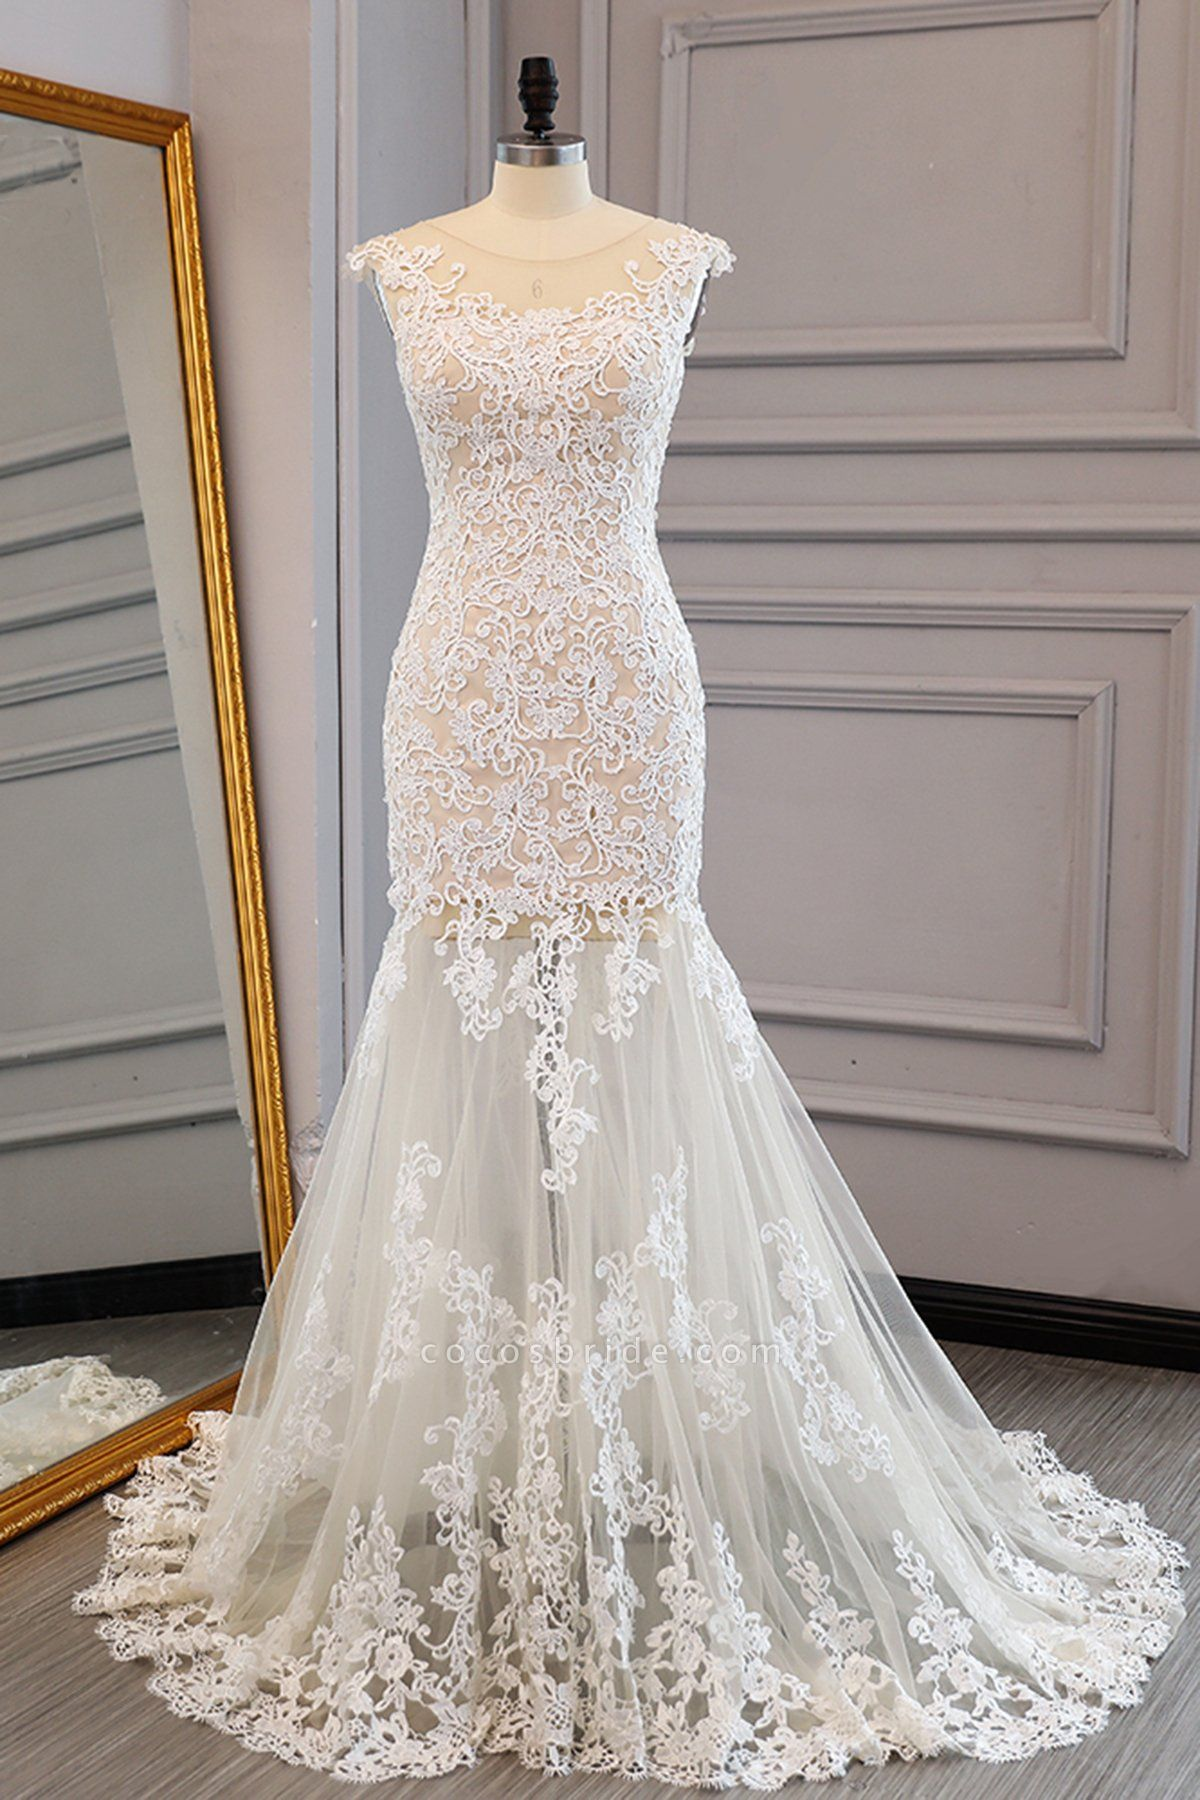 Ivory Lace Long Mermaid Wedding Dress